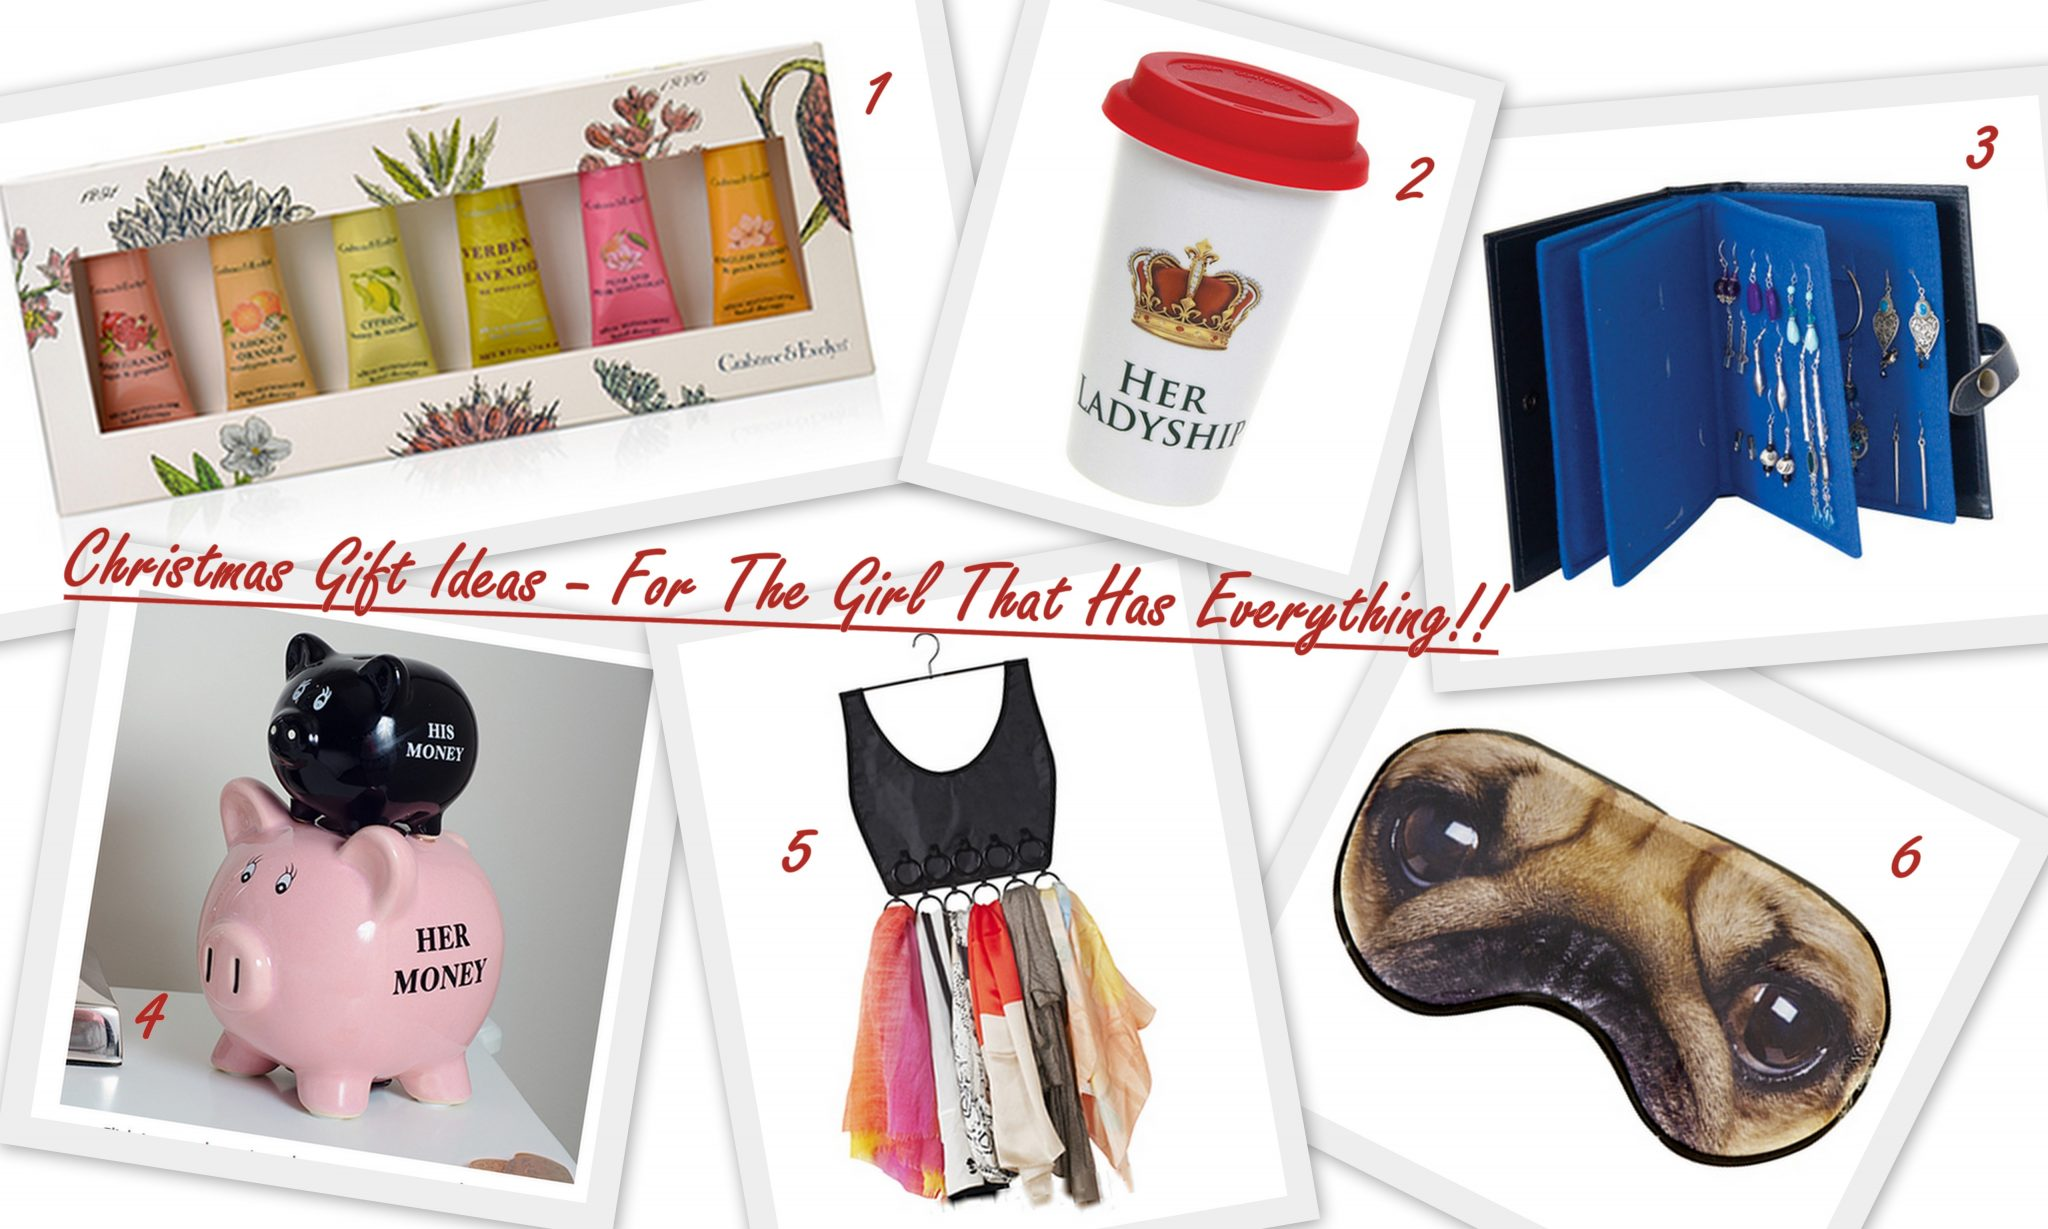 Christmas Gift Ideas For The Girl That Has Everything